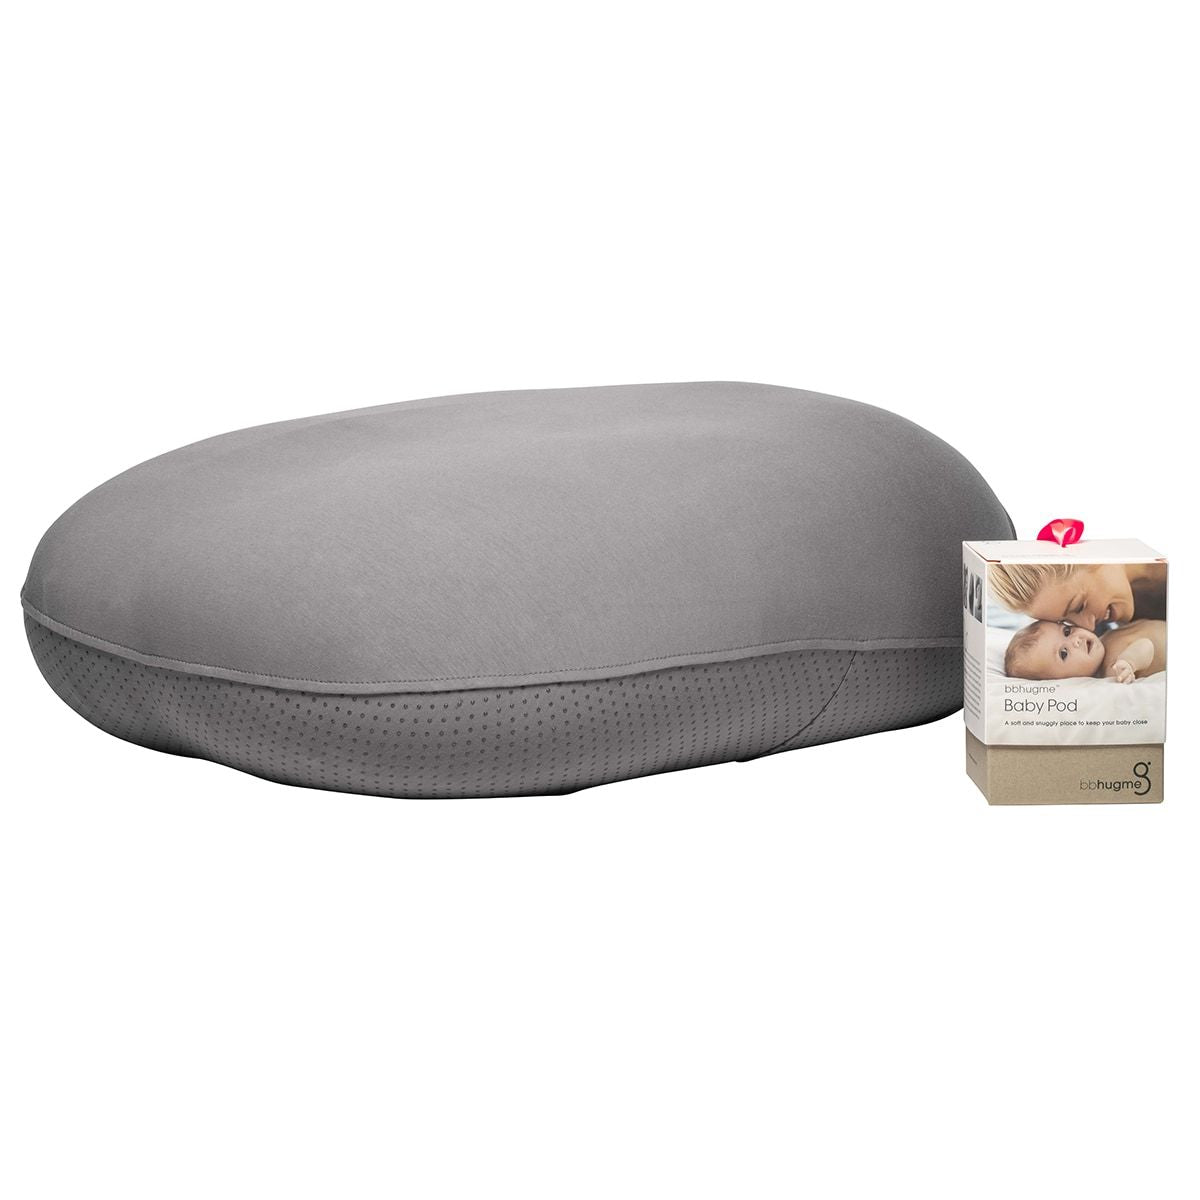 Image of   bbhugme Baby pod/cover til Graviditets- & ammepude, Stone